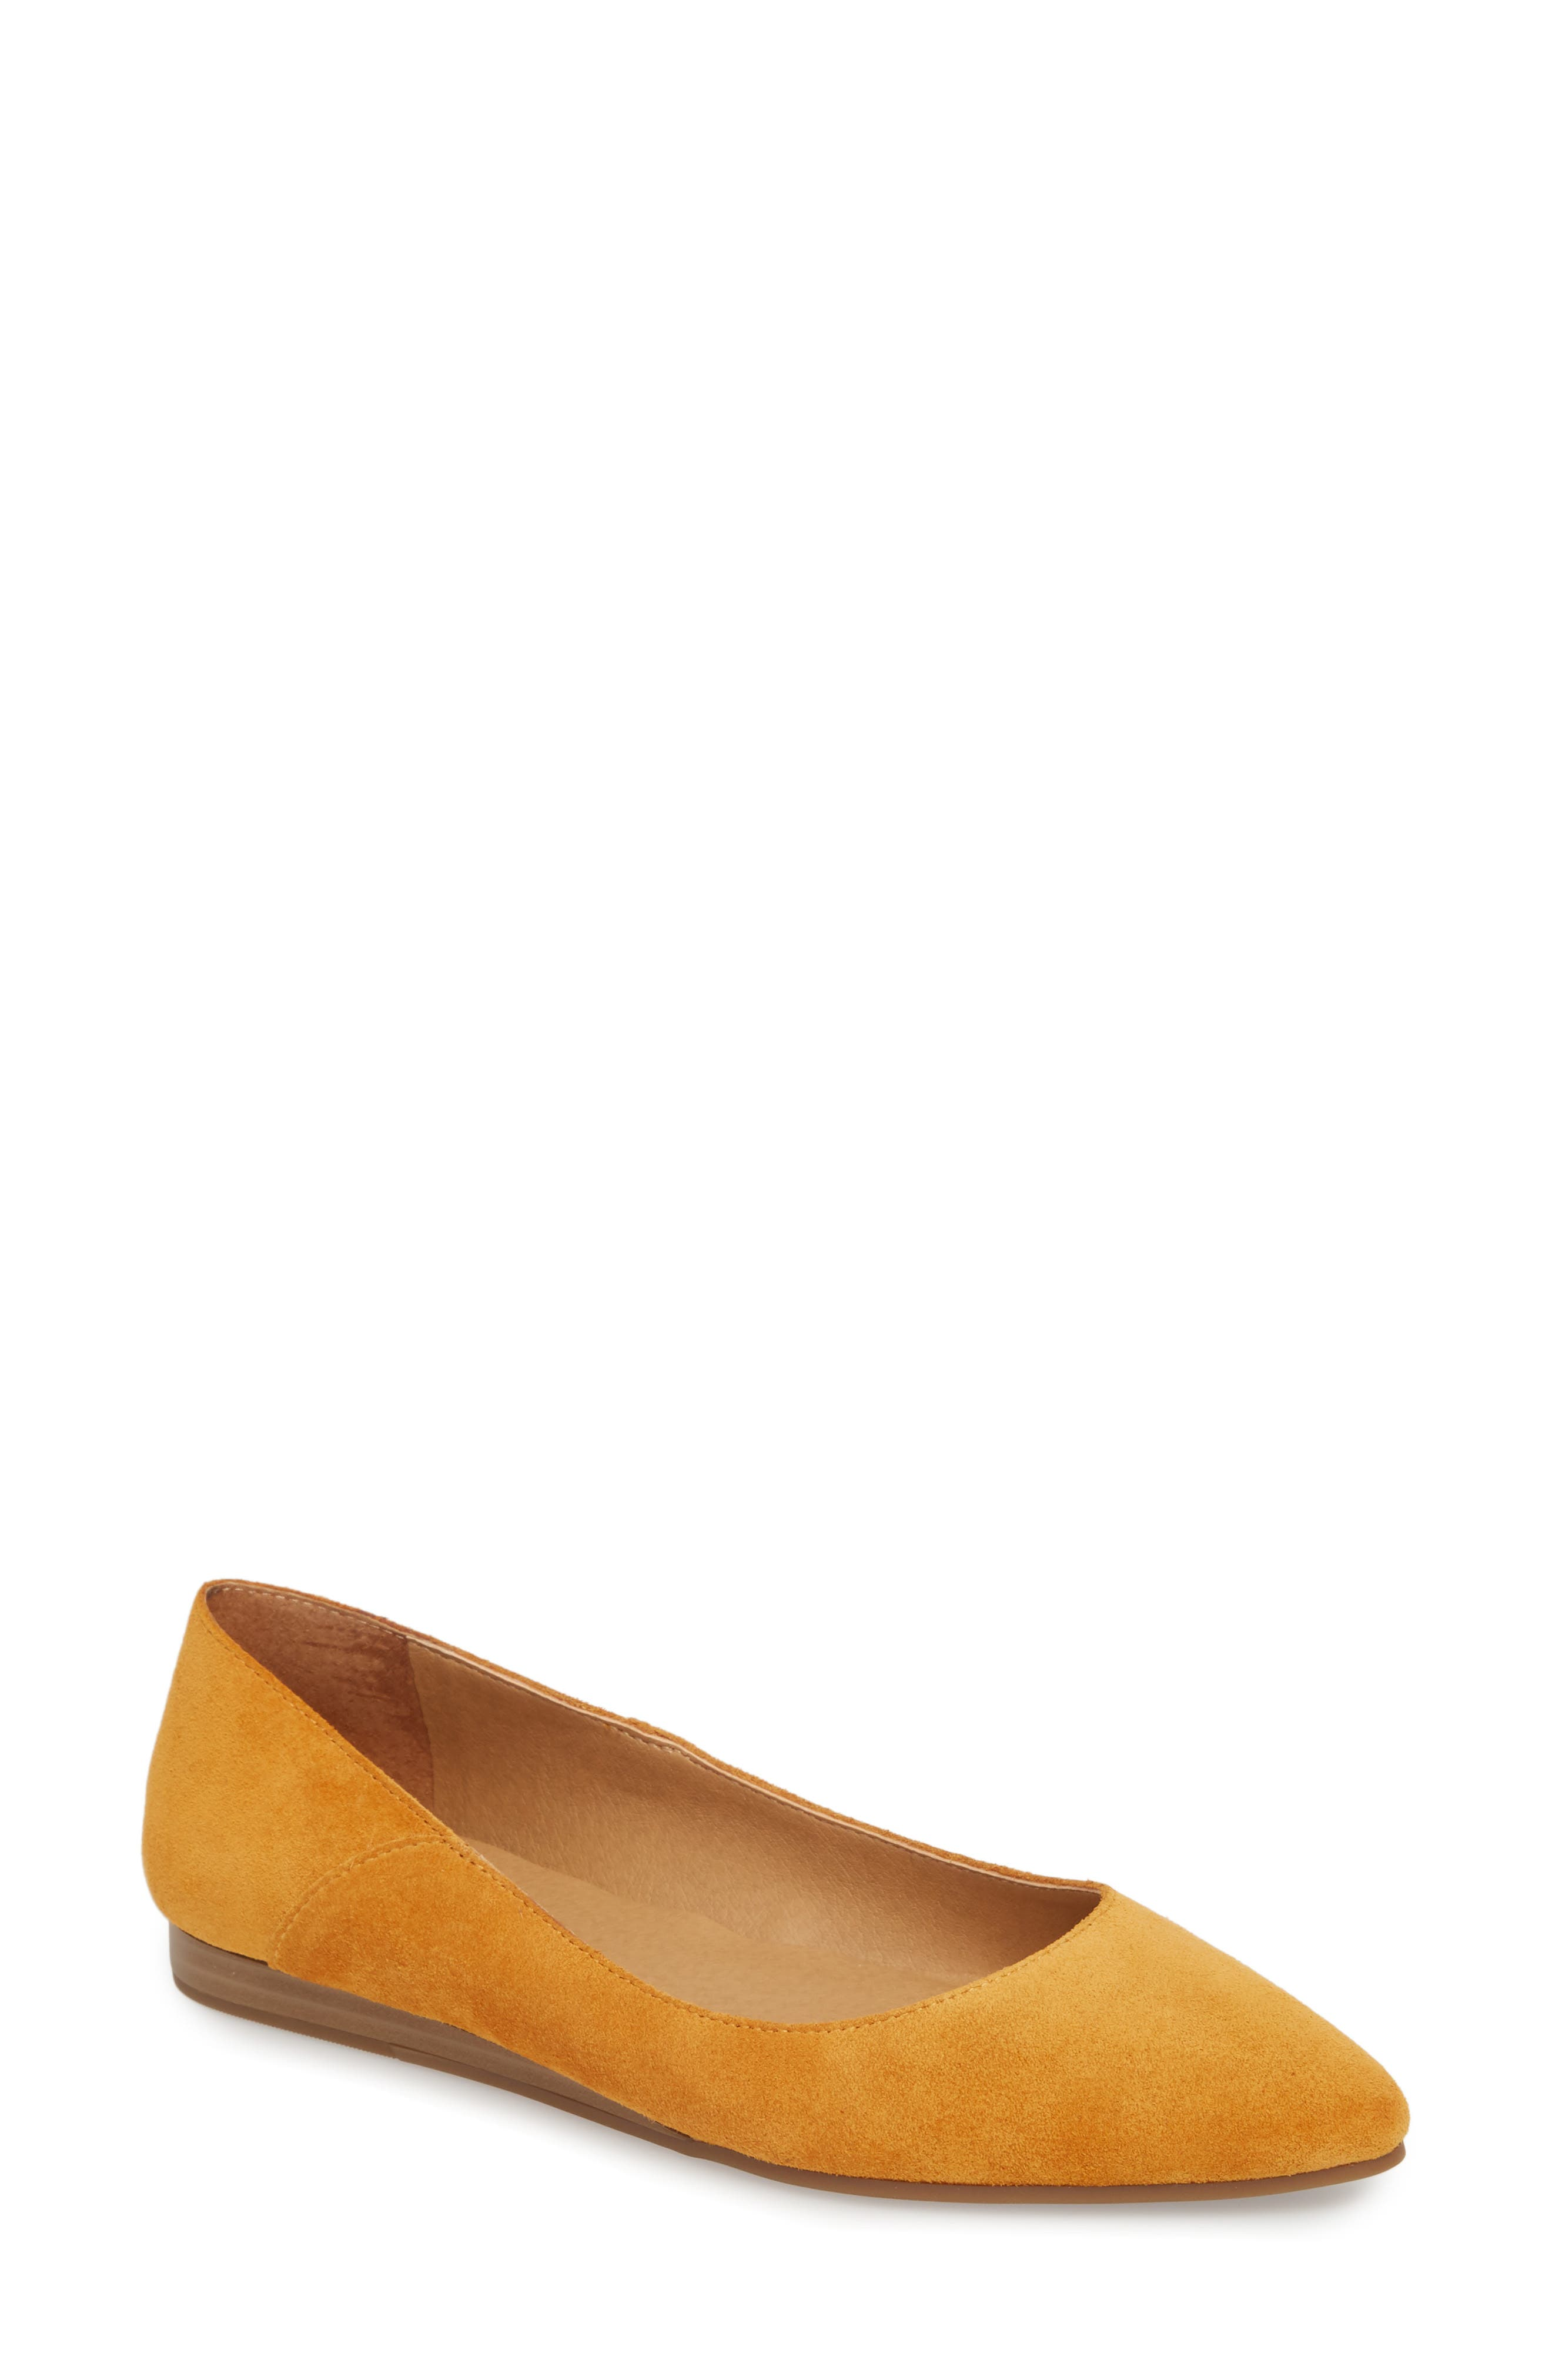 Bylando Flat,                         Main,                         color, Inca Gold Suede